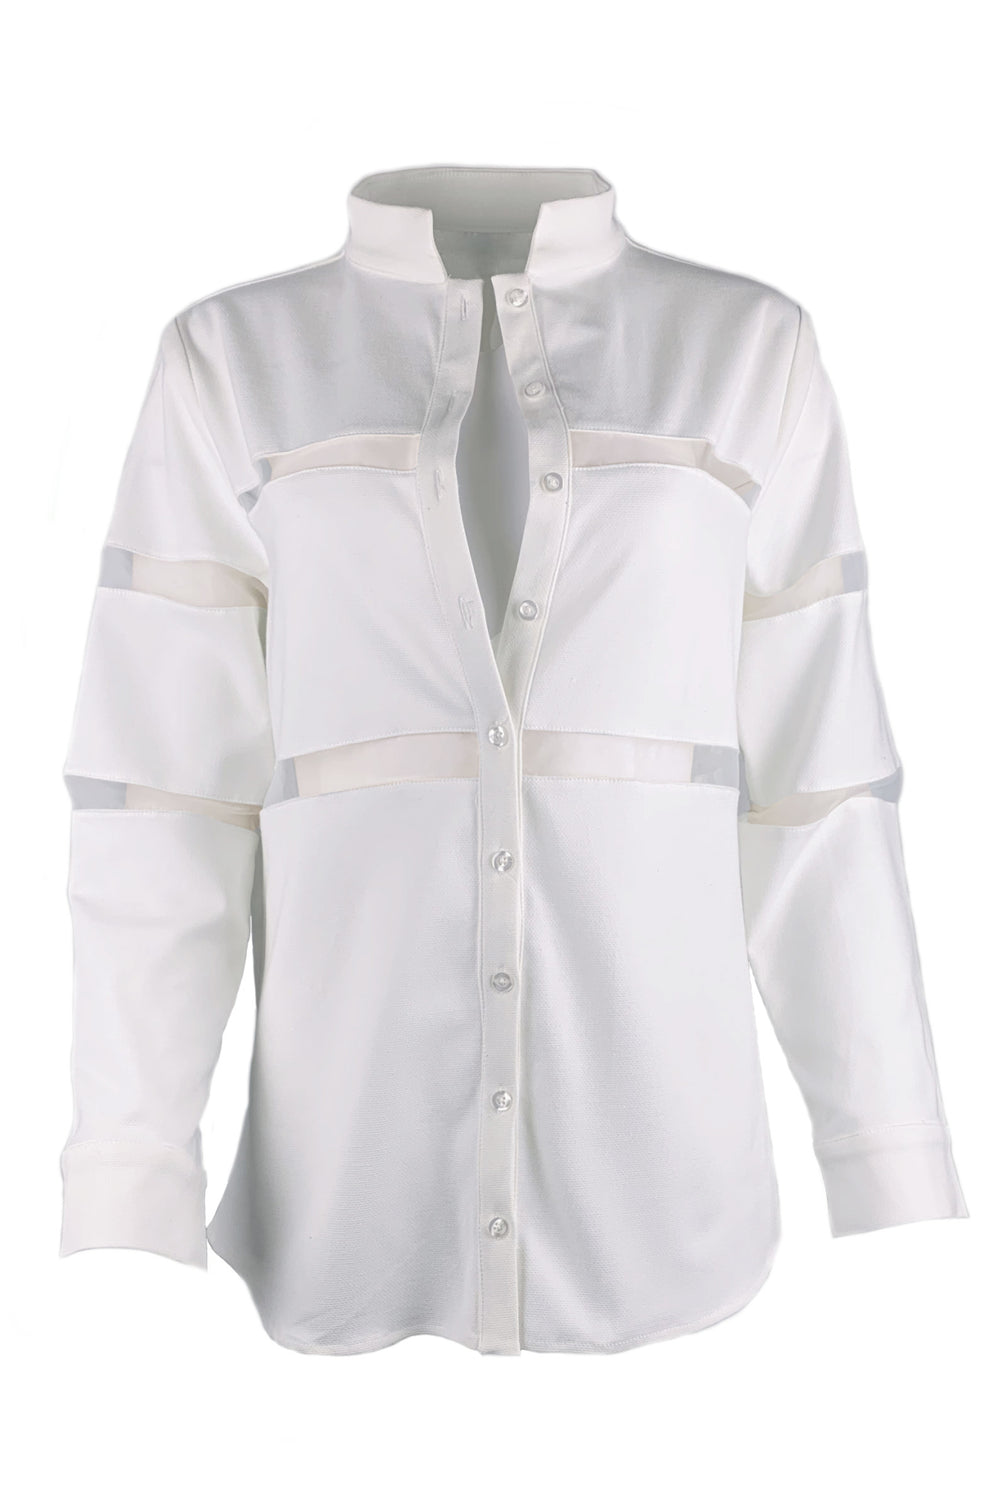 Greer Buttondown • White